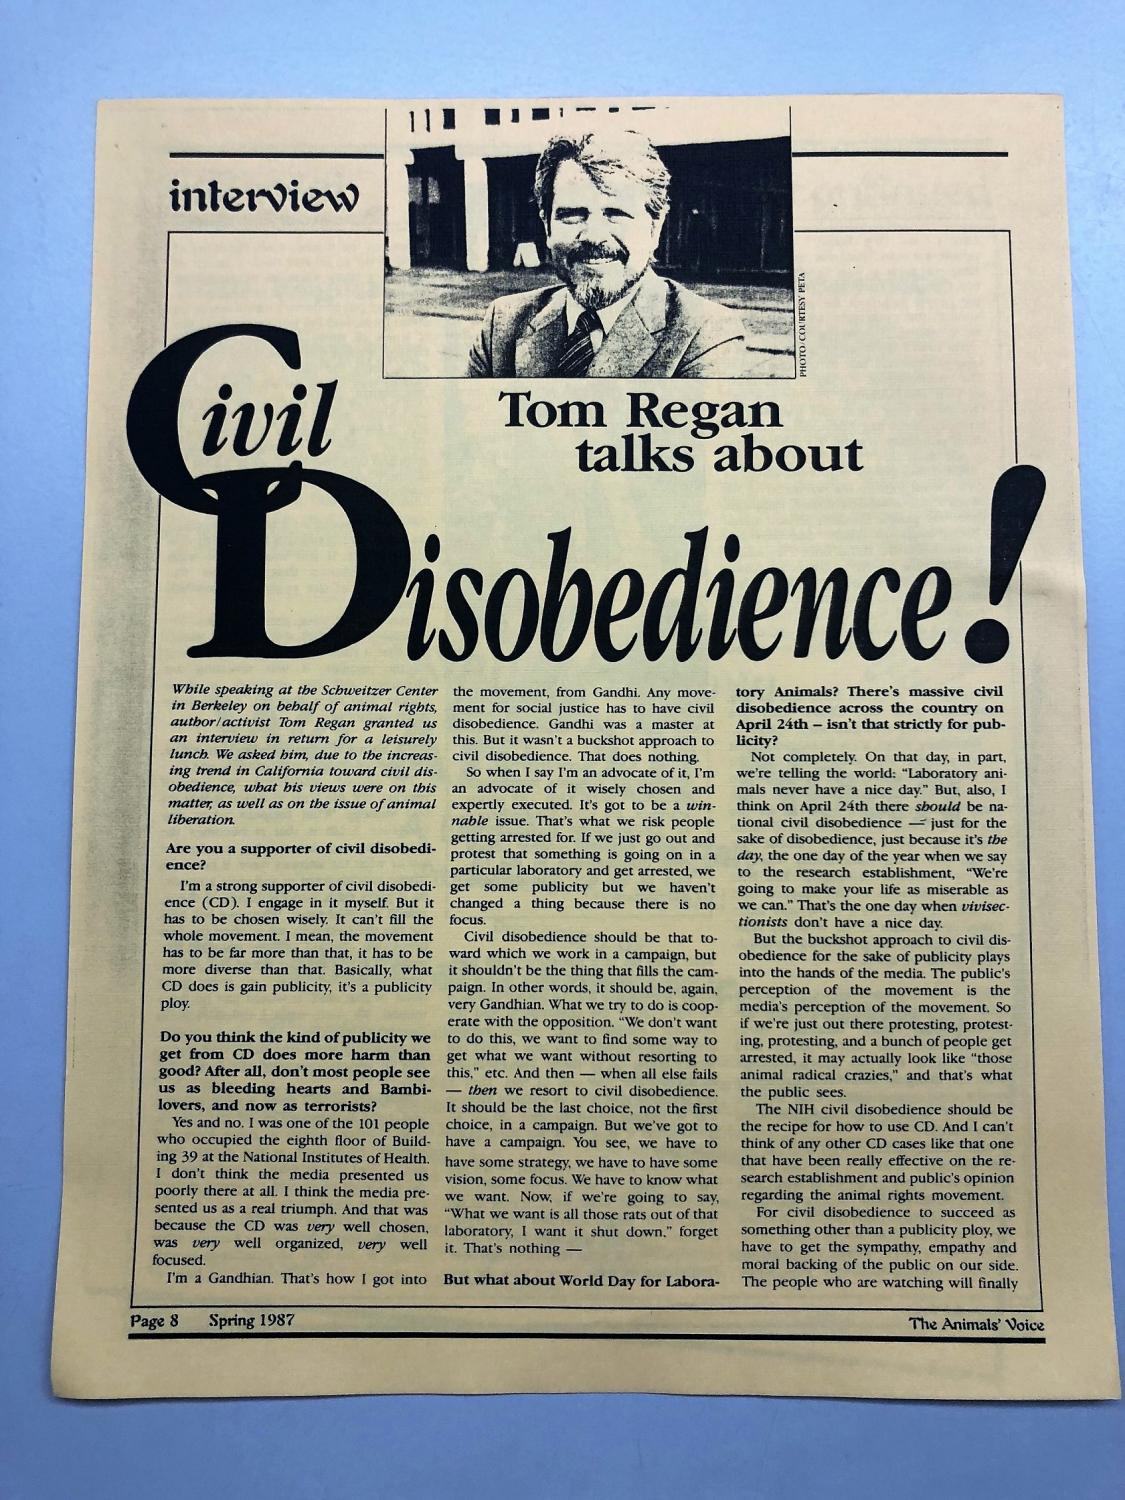 Tom Regan interview in the Animals' Voice, 1987